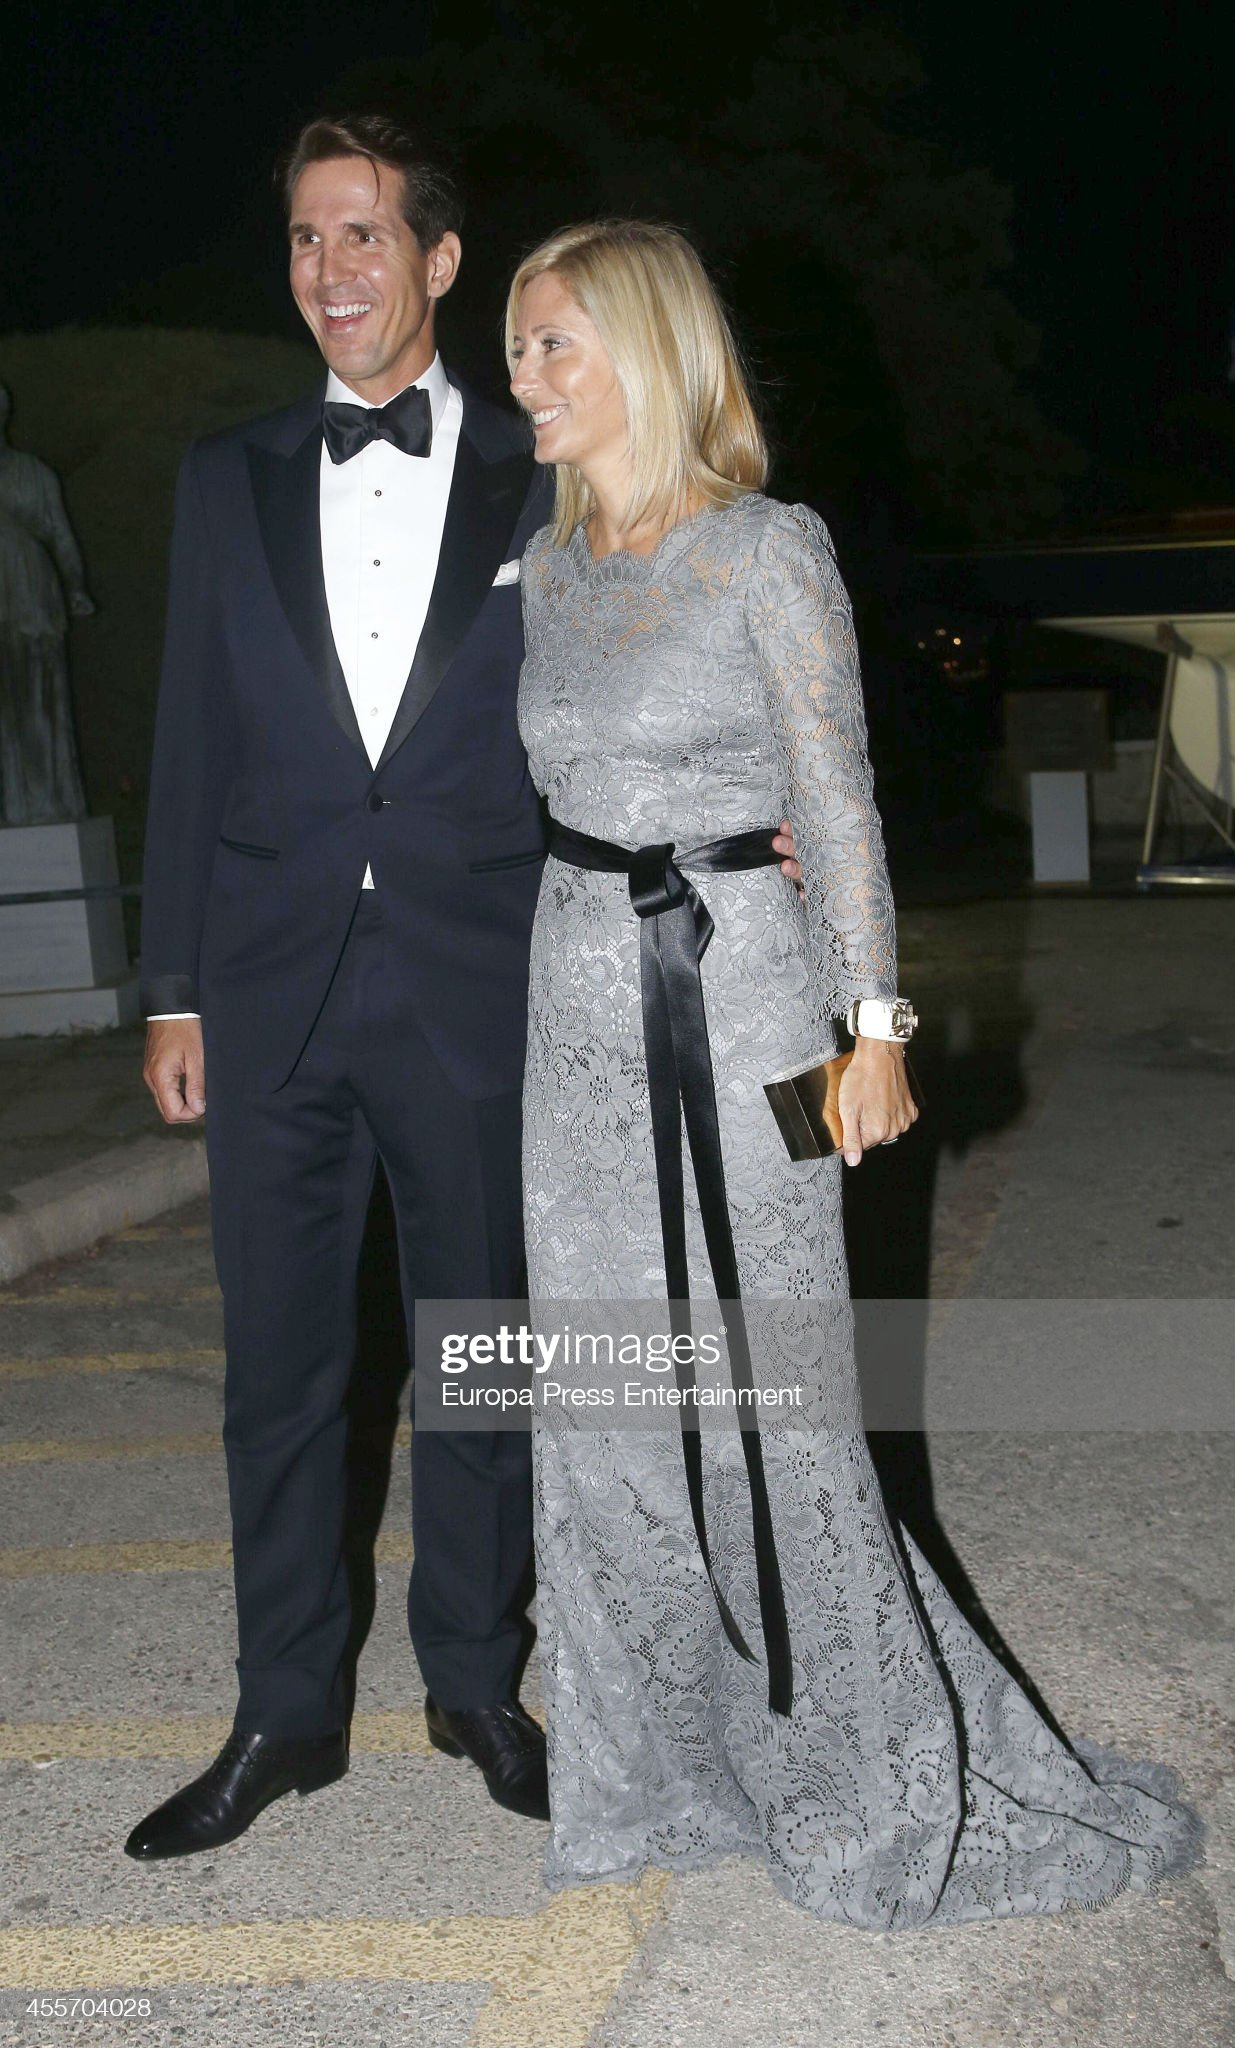 Golden Wedding Anniversary of King Constantine II and Queen Anne-Marie of Greece : News Photo